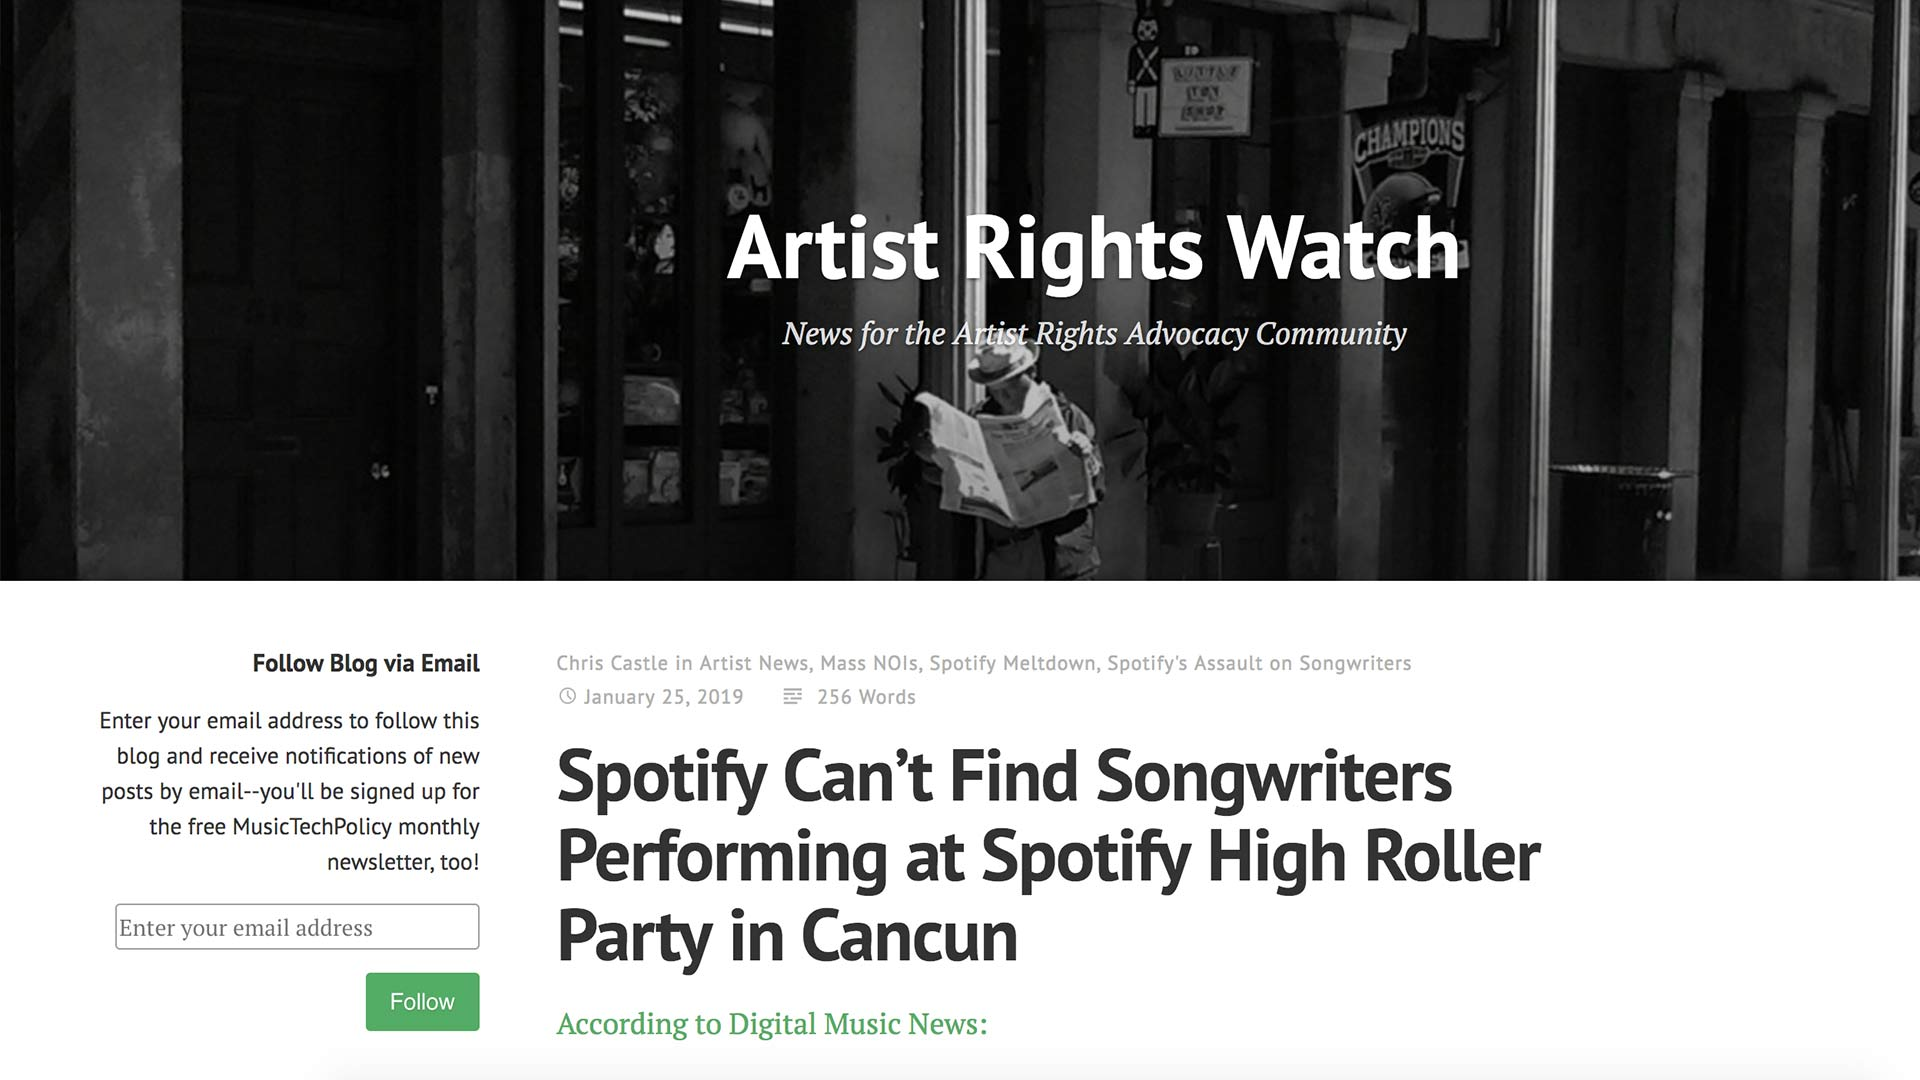 Fairness Rocks News Spotify Can't Find Songwriters Performing at Spotify High Roller Party in Cancun